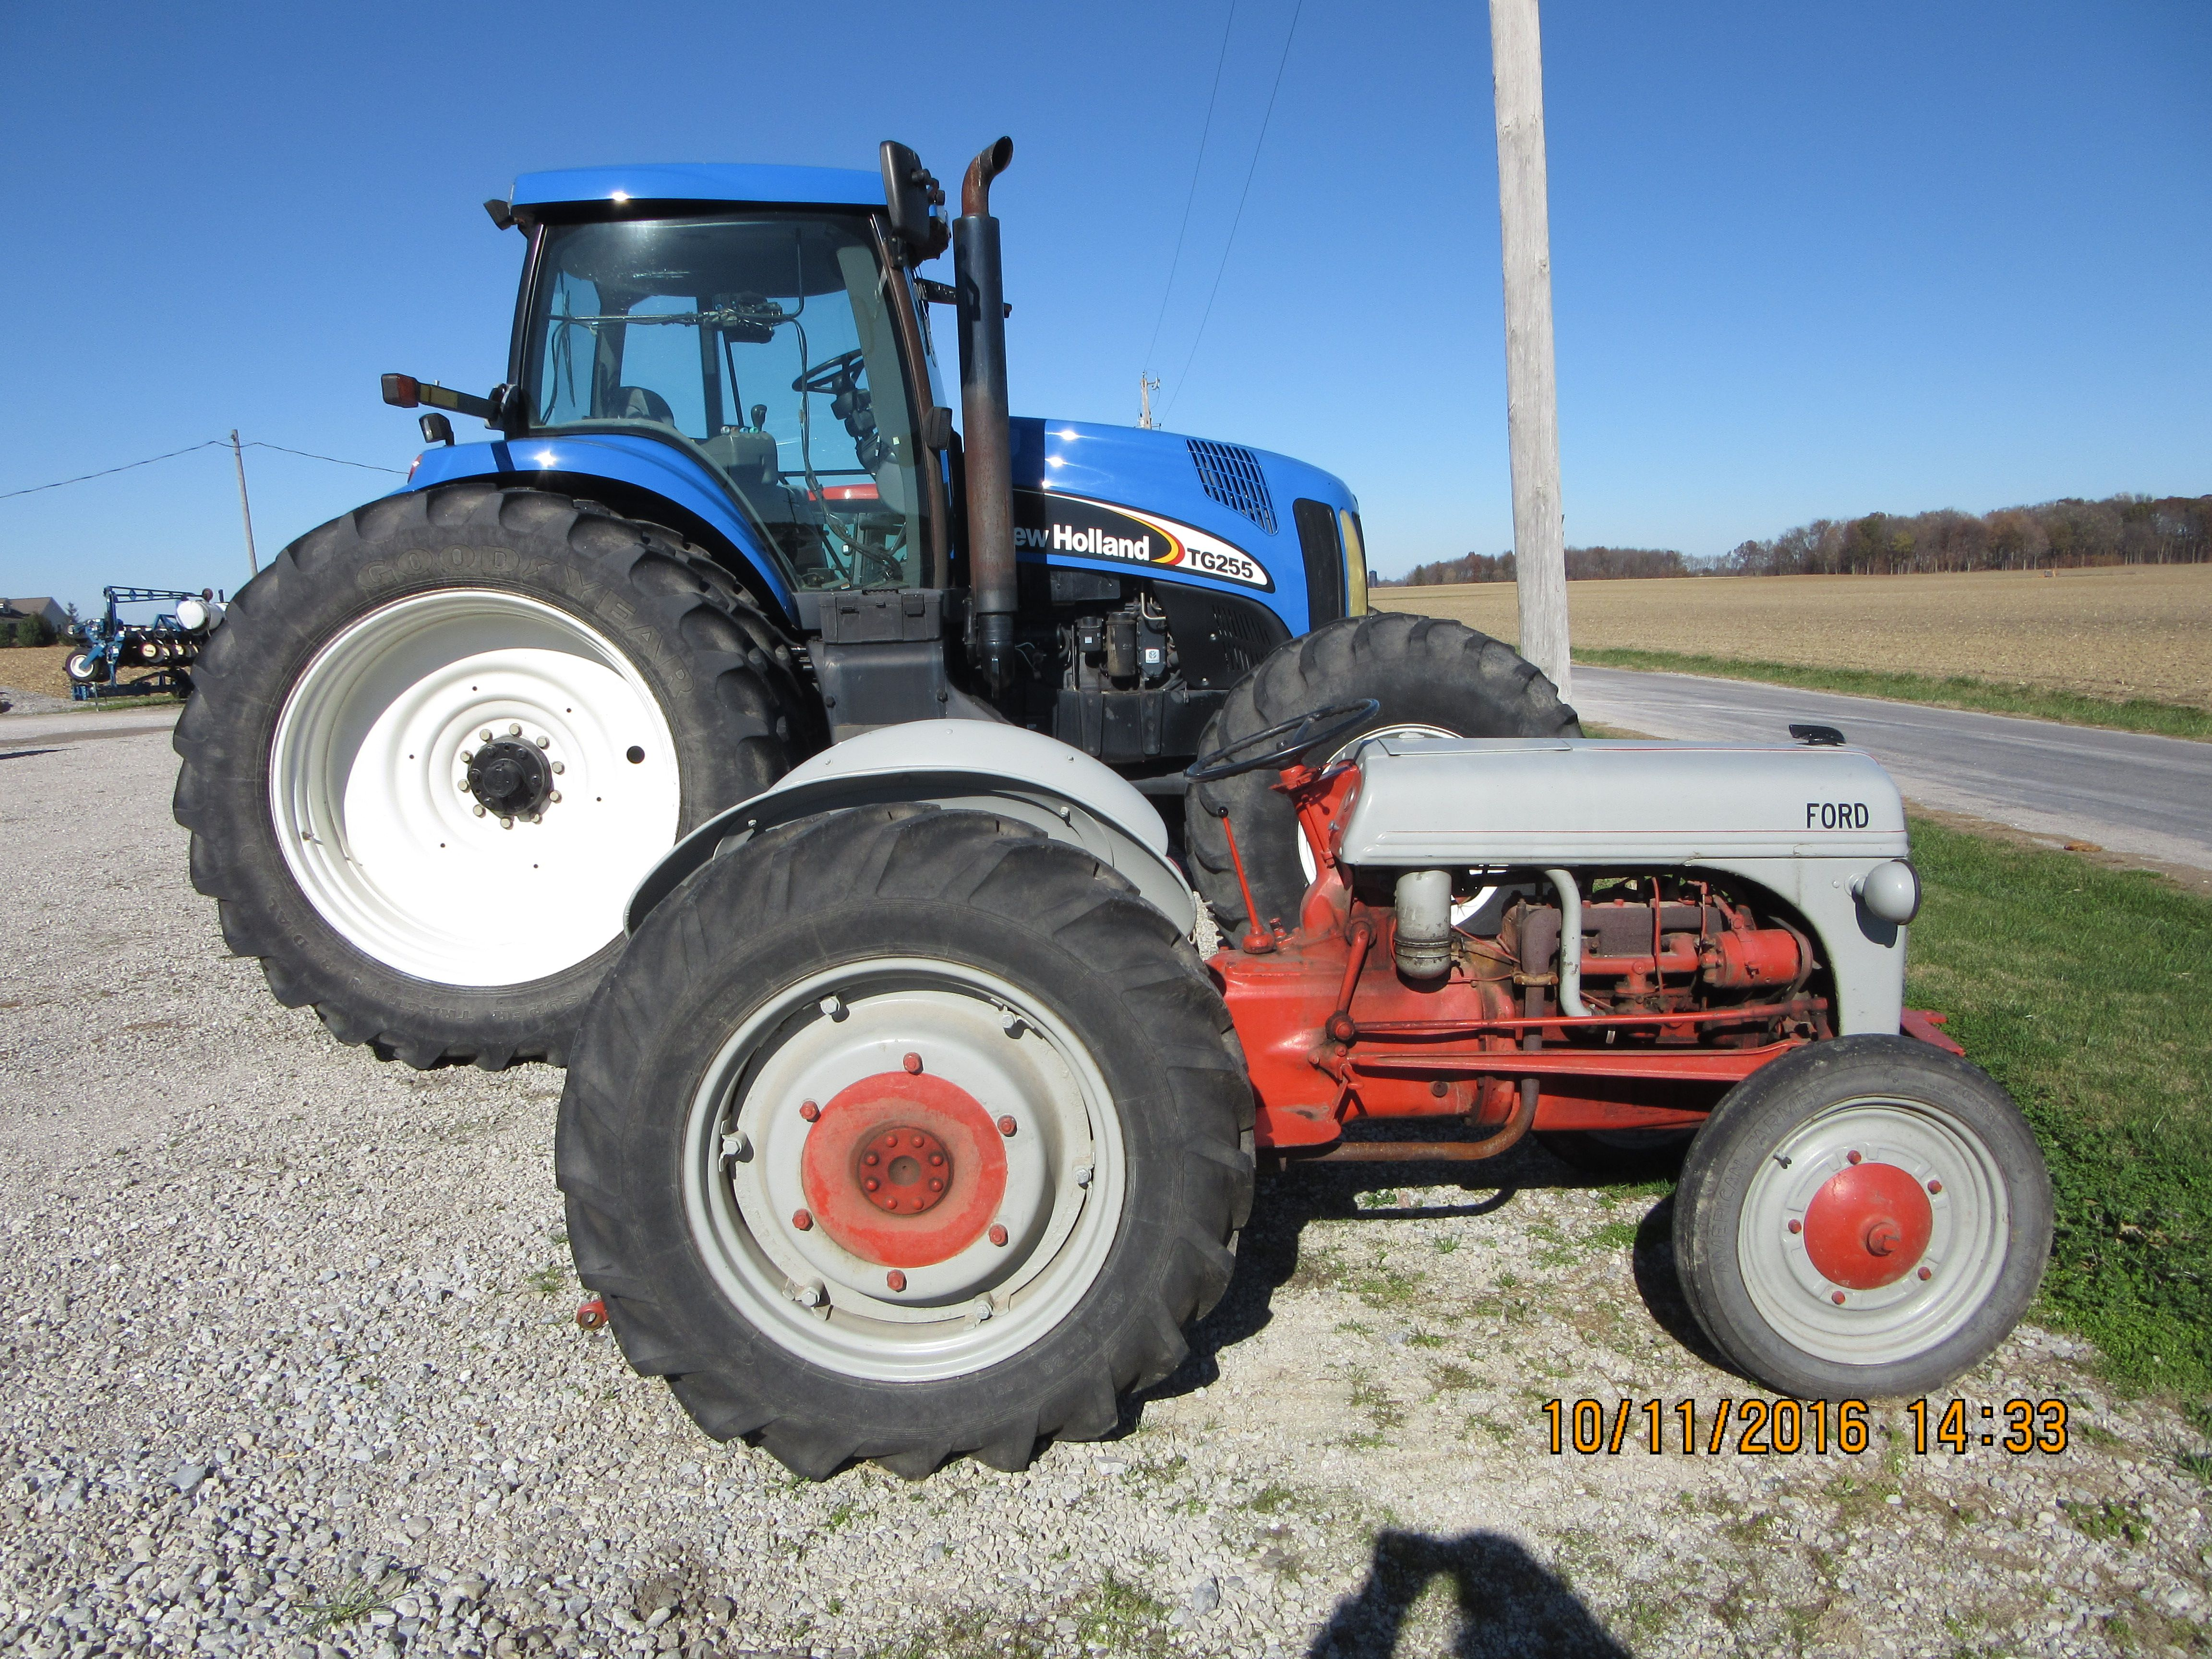 New Holland behind the Ford